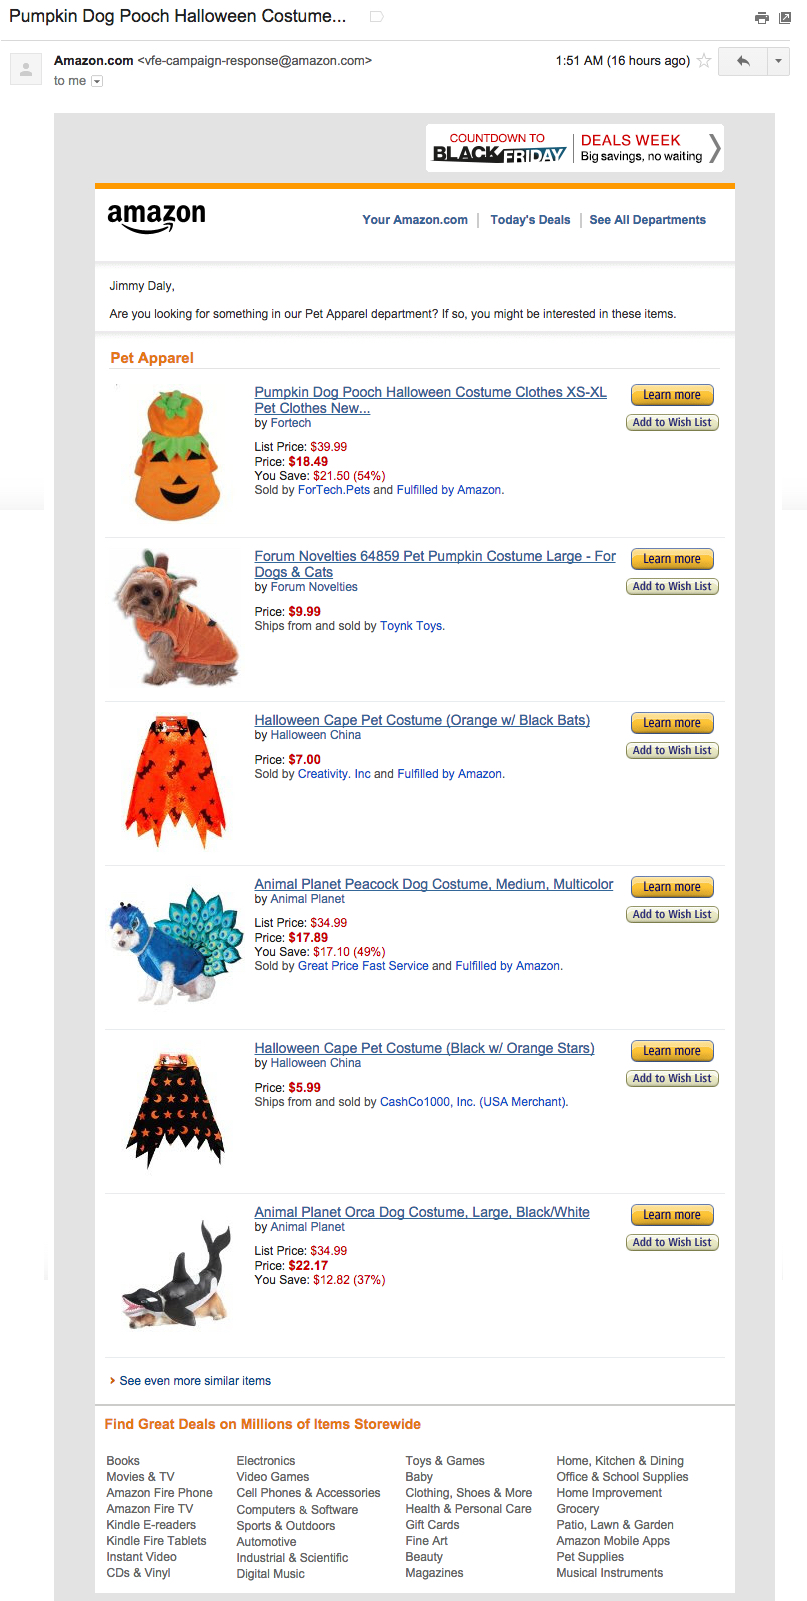 Images shows Amazon product list